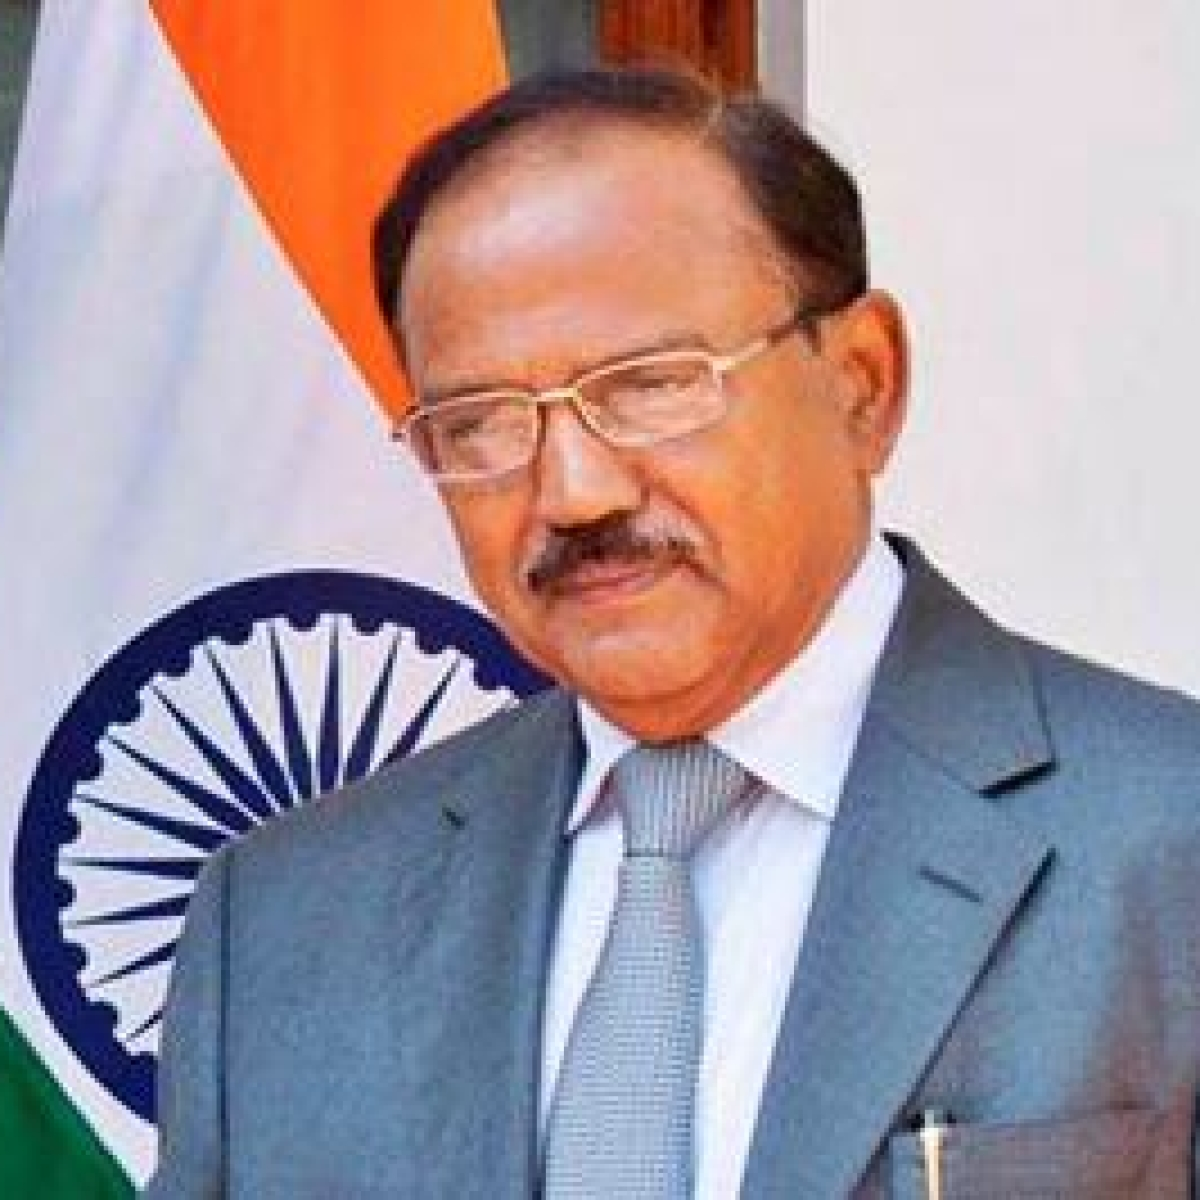 Pakistan under pressure from FATF: Ajit Doval